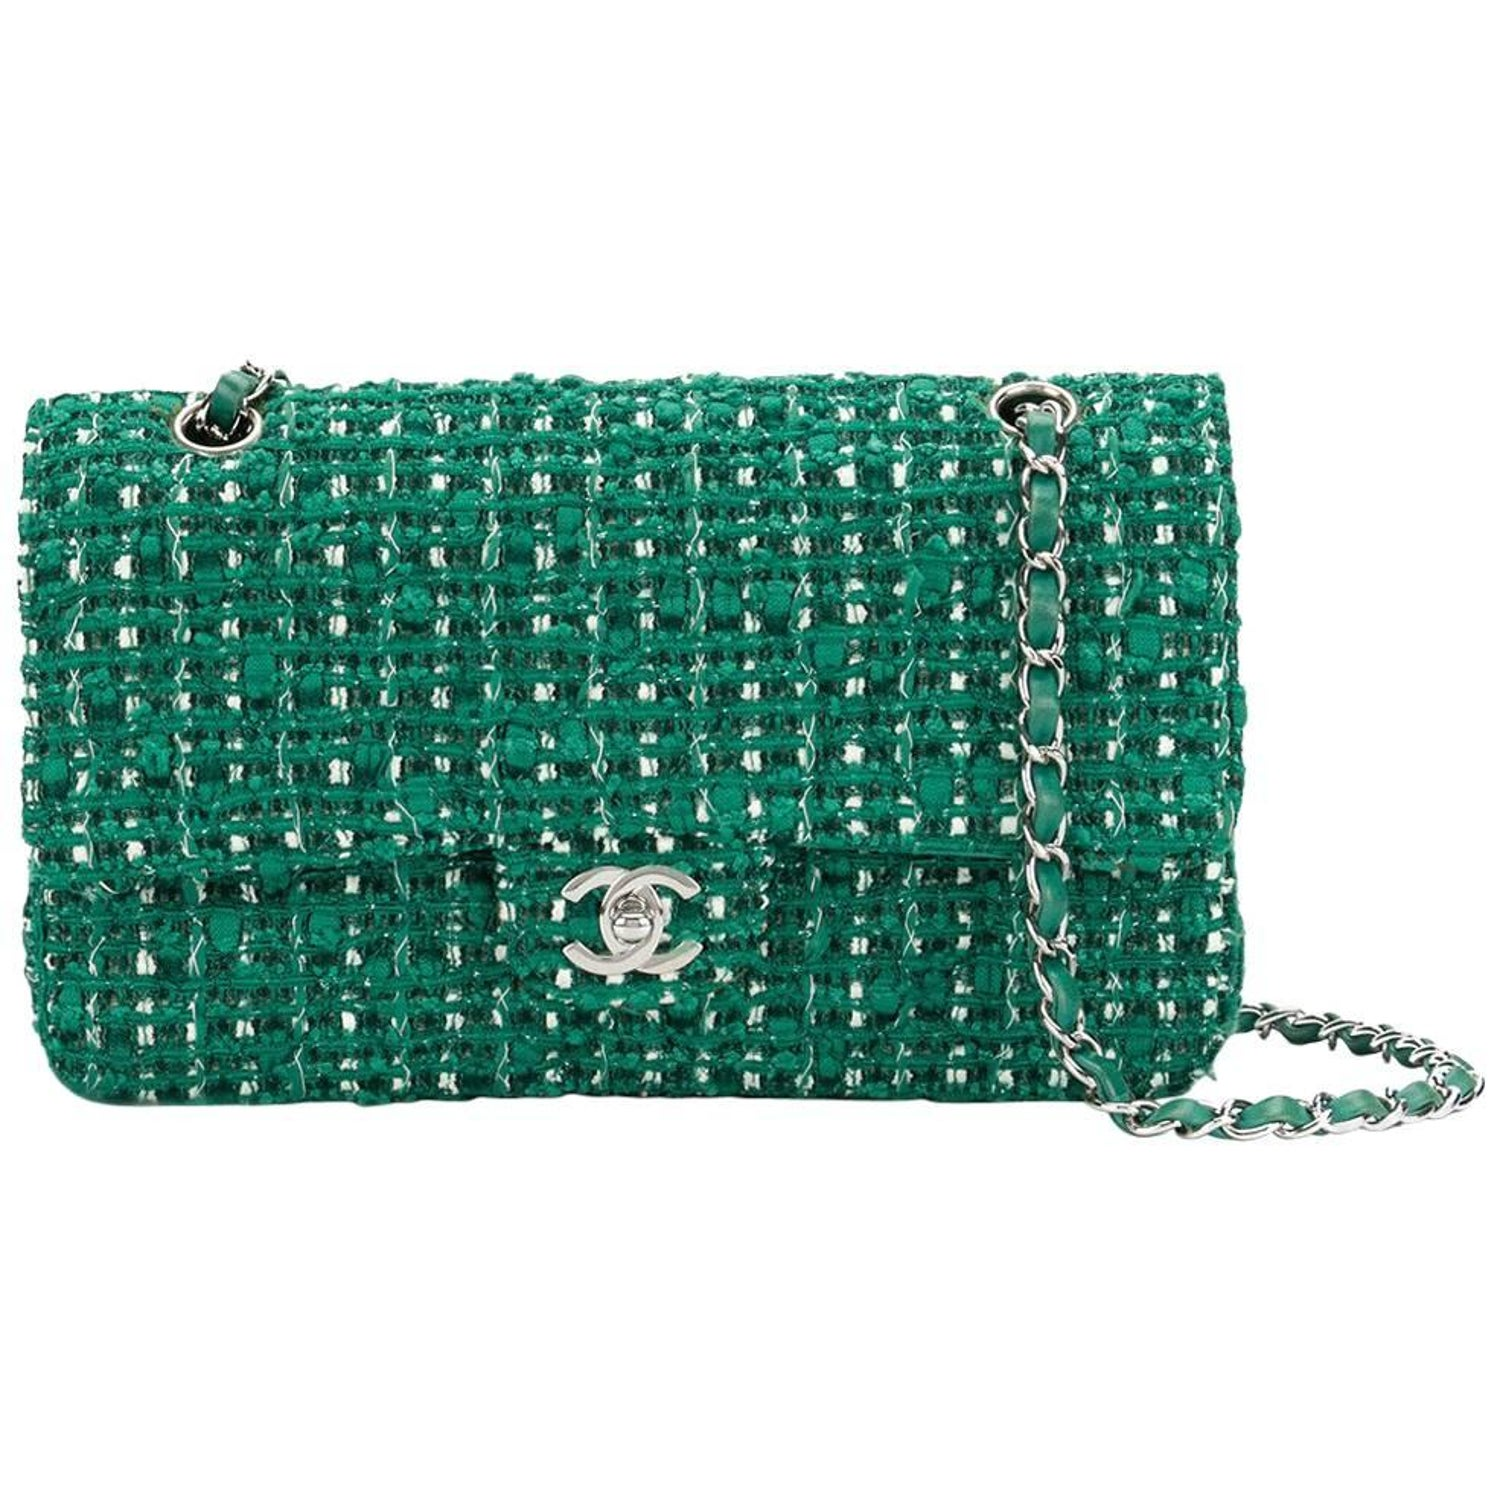 0724559c89a3f2 Chanel Green Tweed Vintage Bag, 2000s at 1stdibs